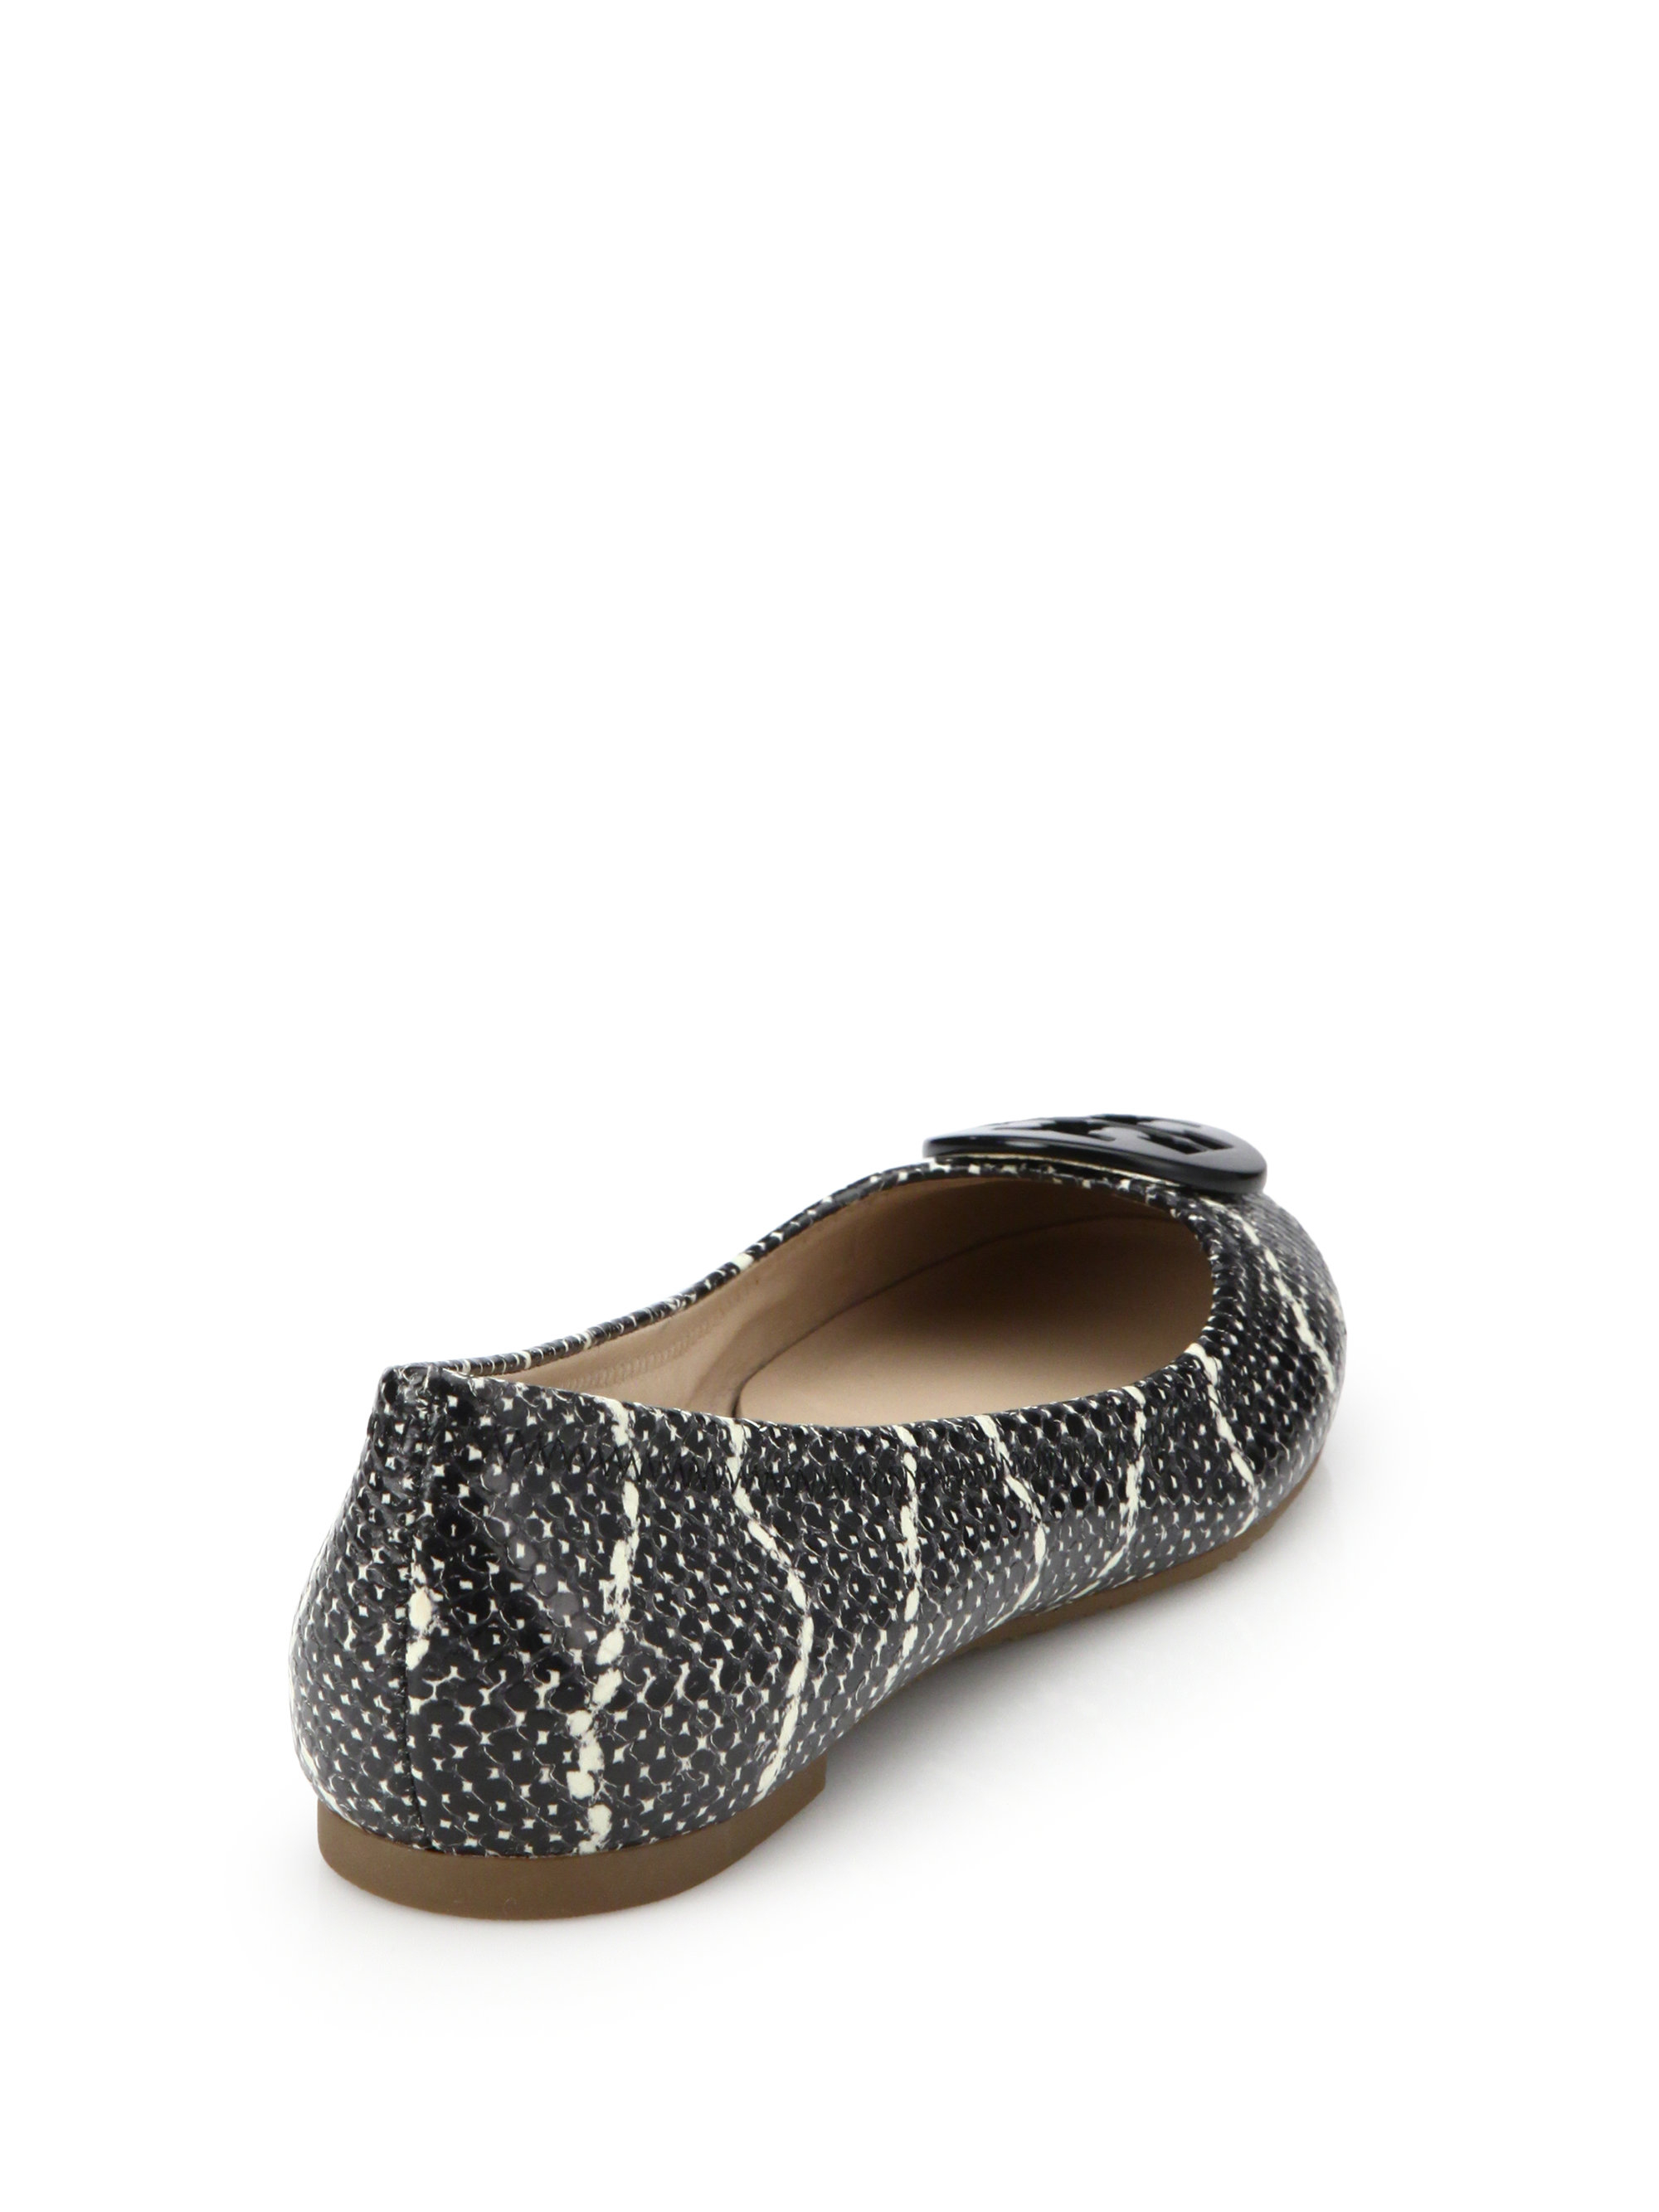 Snake Leather Tory Burch Shoes